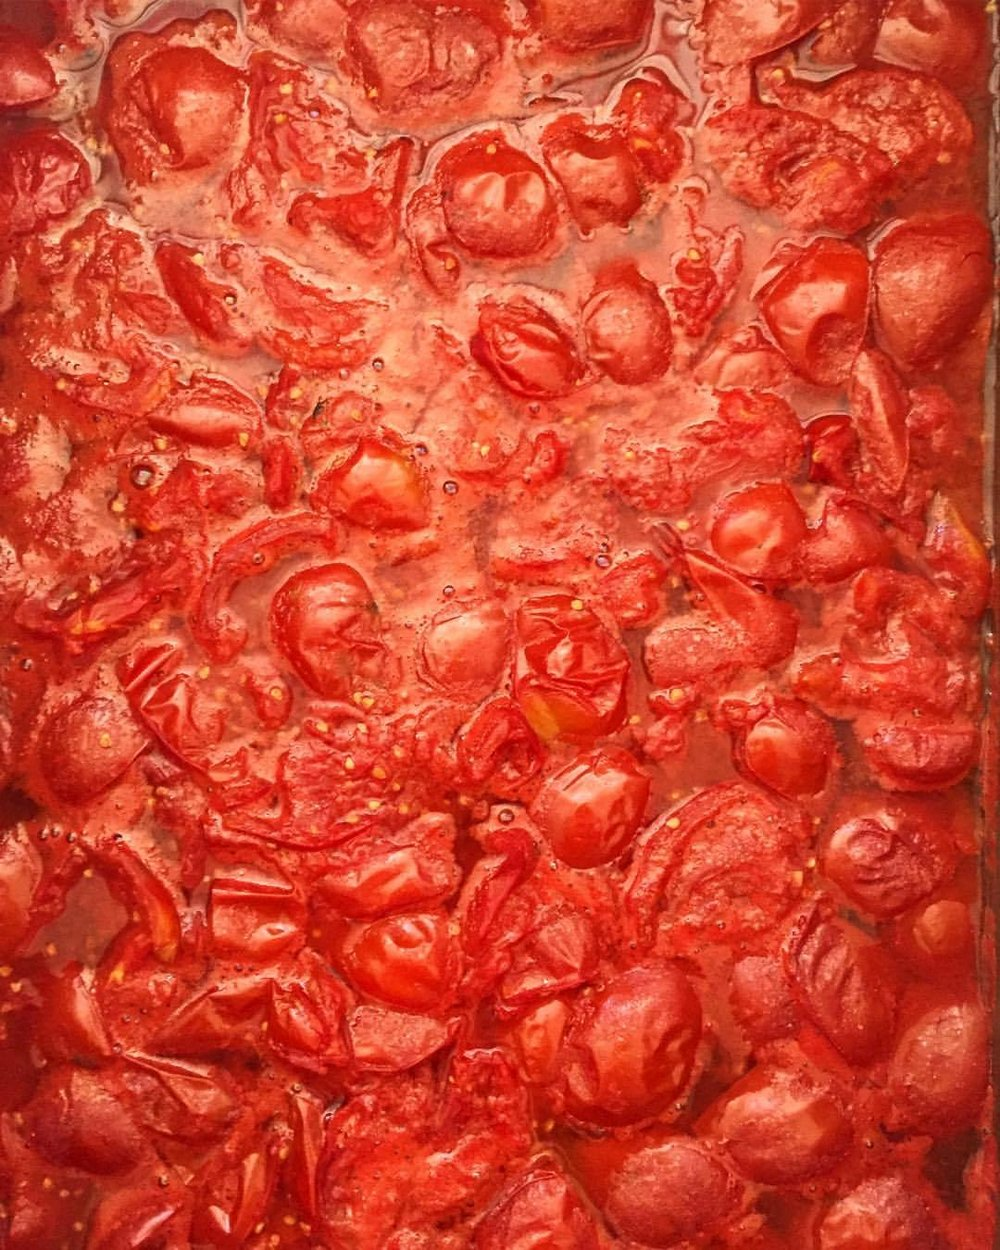 One-hundred pounds of dry-farmed Early Girl tomatoes 🍅 cooked over wood, milled and jarred.    -  #nutsforwinter #sauce #manyhandsmakelightwork  (at Napa, California)